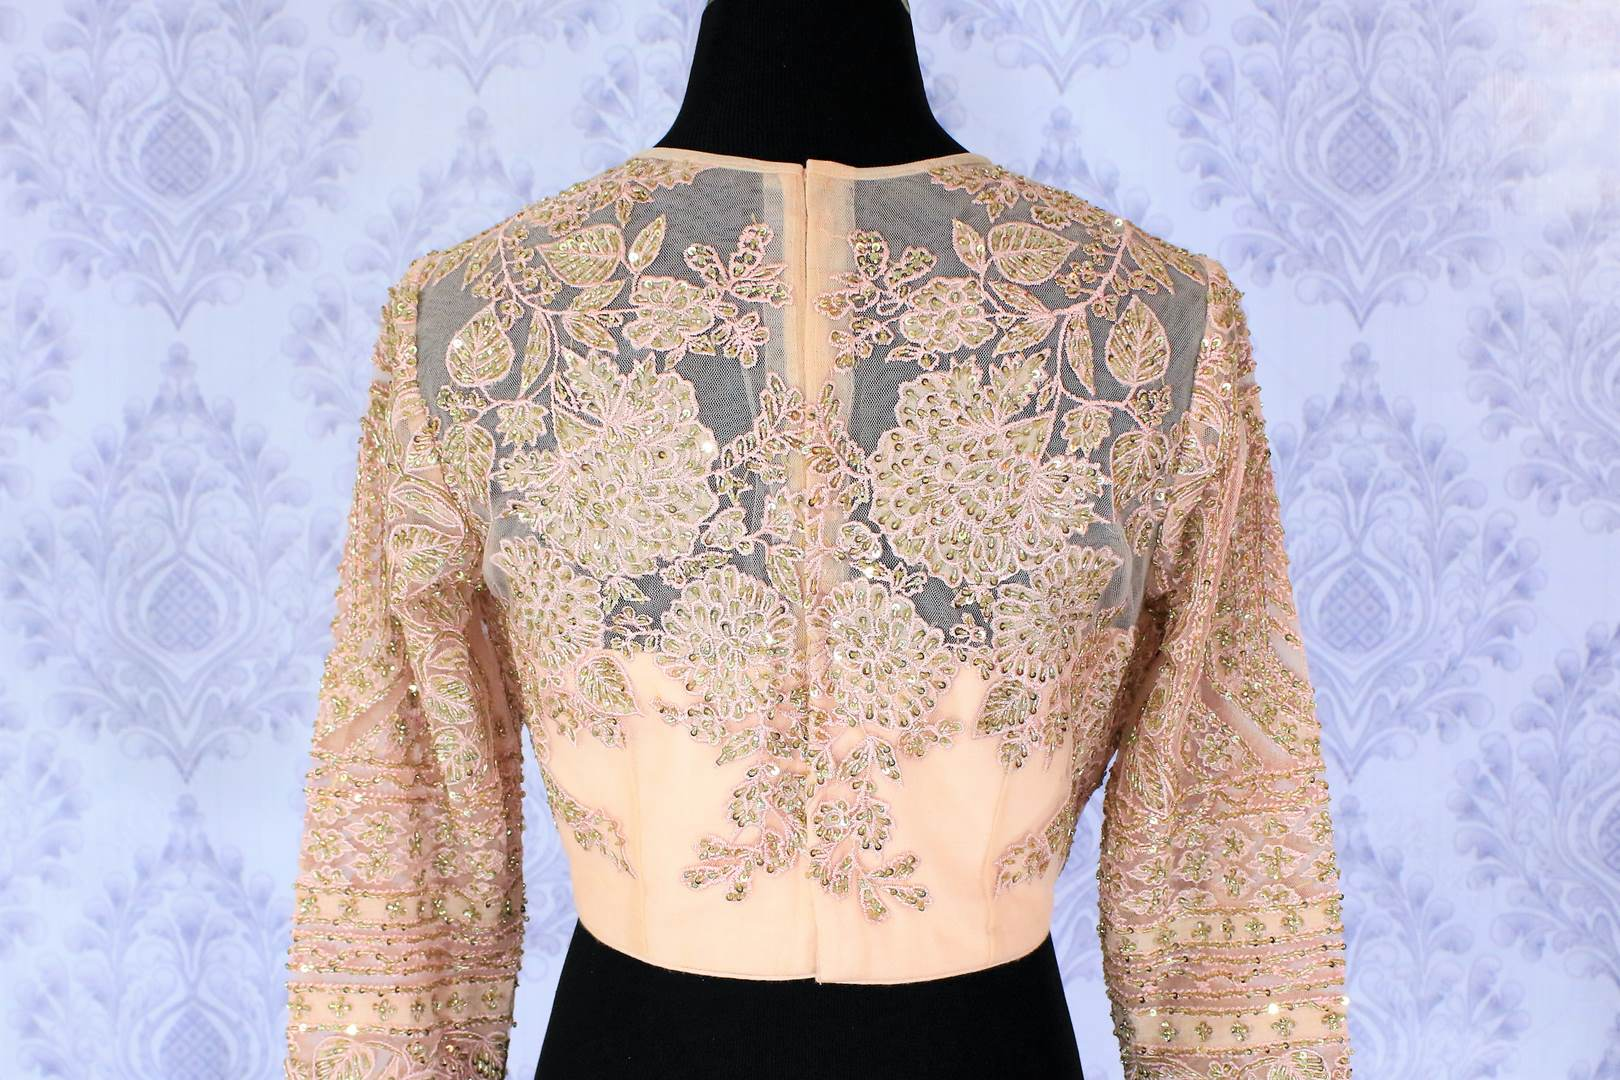 Sizzle like a princess in our exquisitely designed blush pink designer saree blouse with floral embroidery sheer net full sleeve details. The intricately handcrafted modern blouse is your go-to wedding and party must-have. Shop beautiful designer blouses online or visit Pure Elegance store in USA. -back